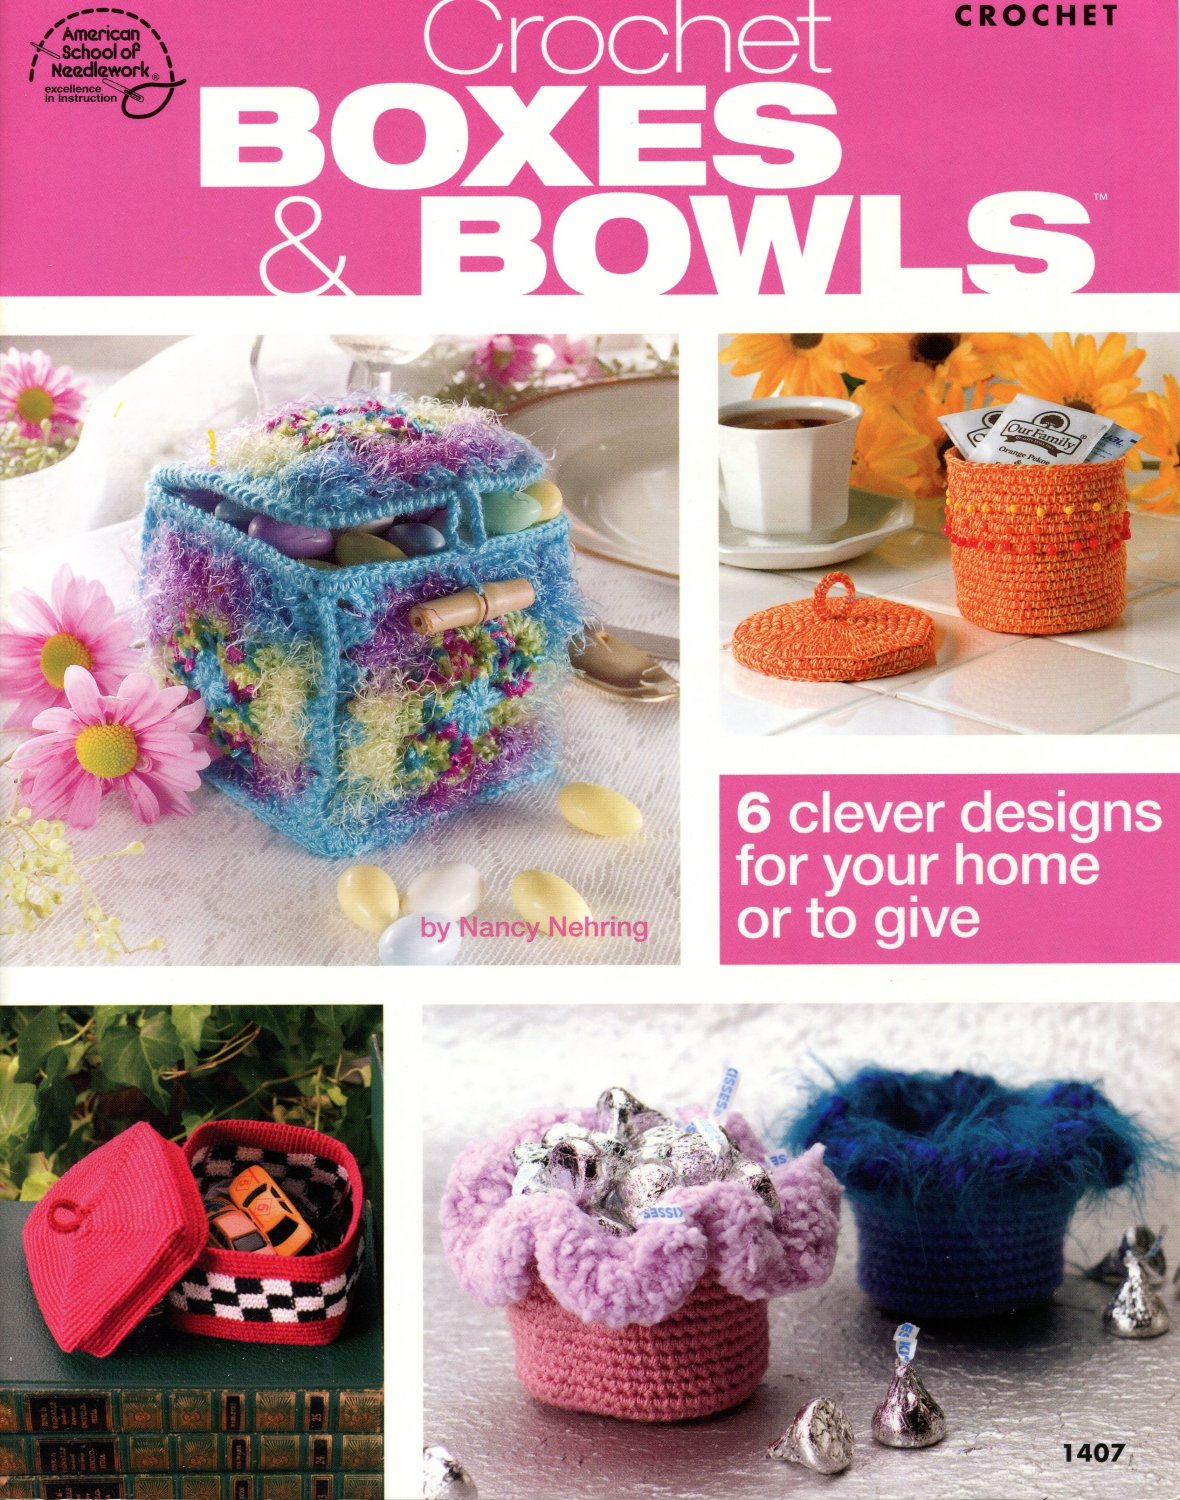 Crochet Boxes and Bowls Booklet